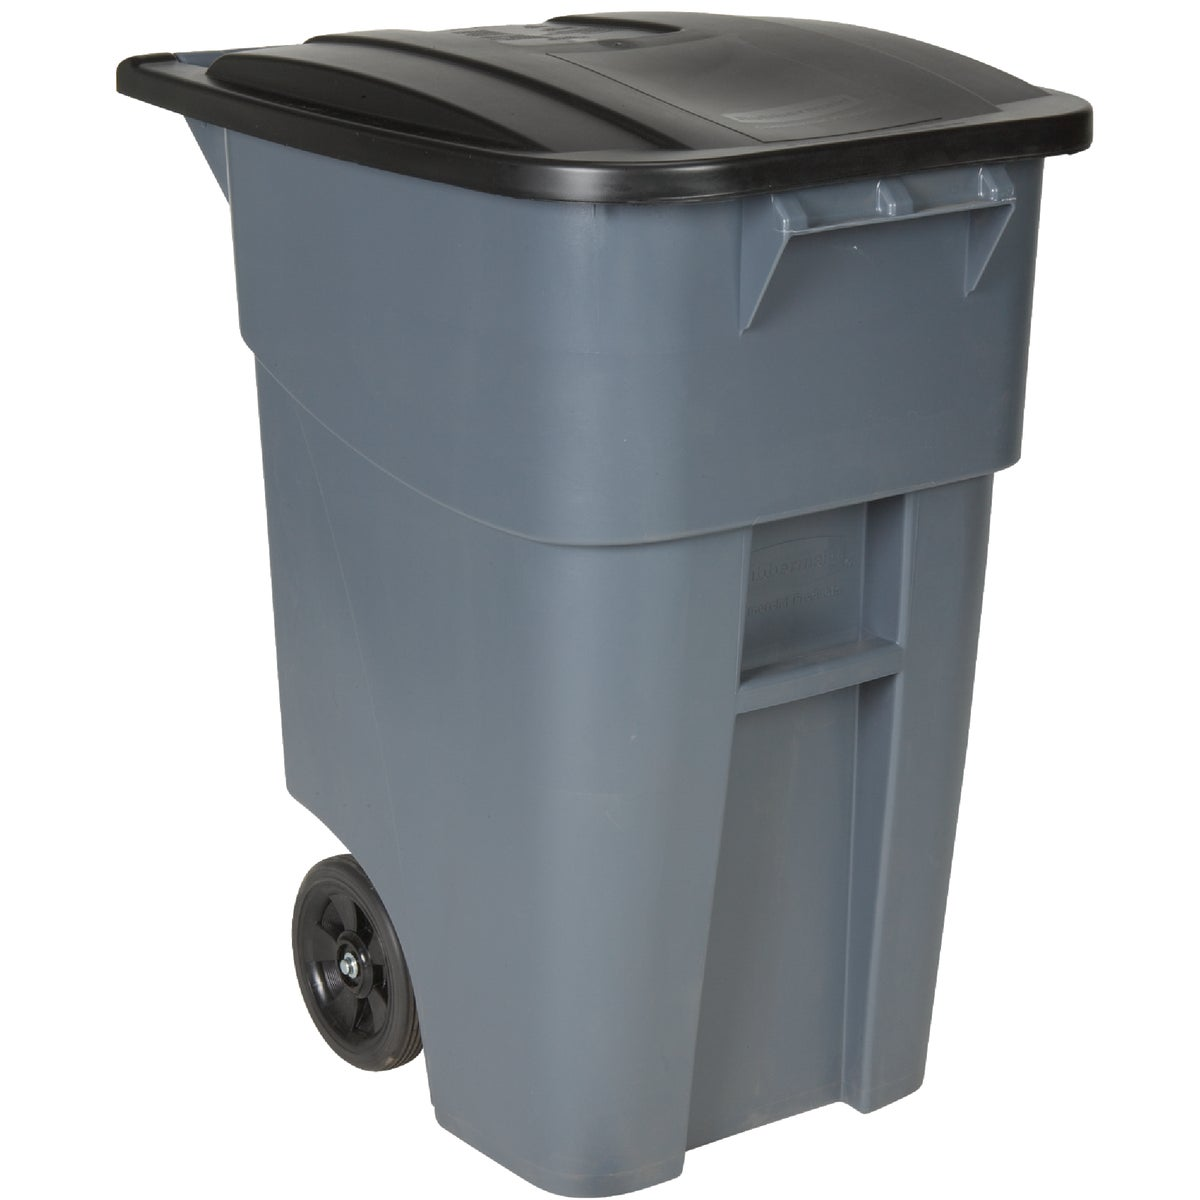 50GAL PLASTIC TRASH CAN - FG9W2700GRAY by Rubbermaid Comm Prod